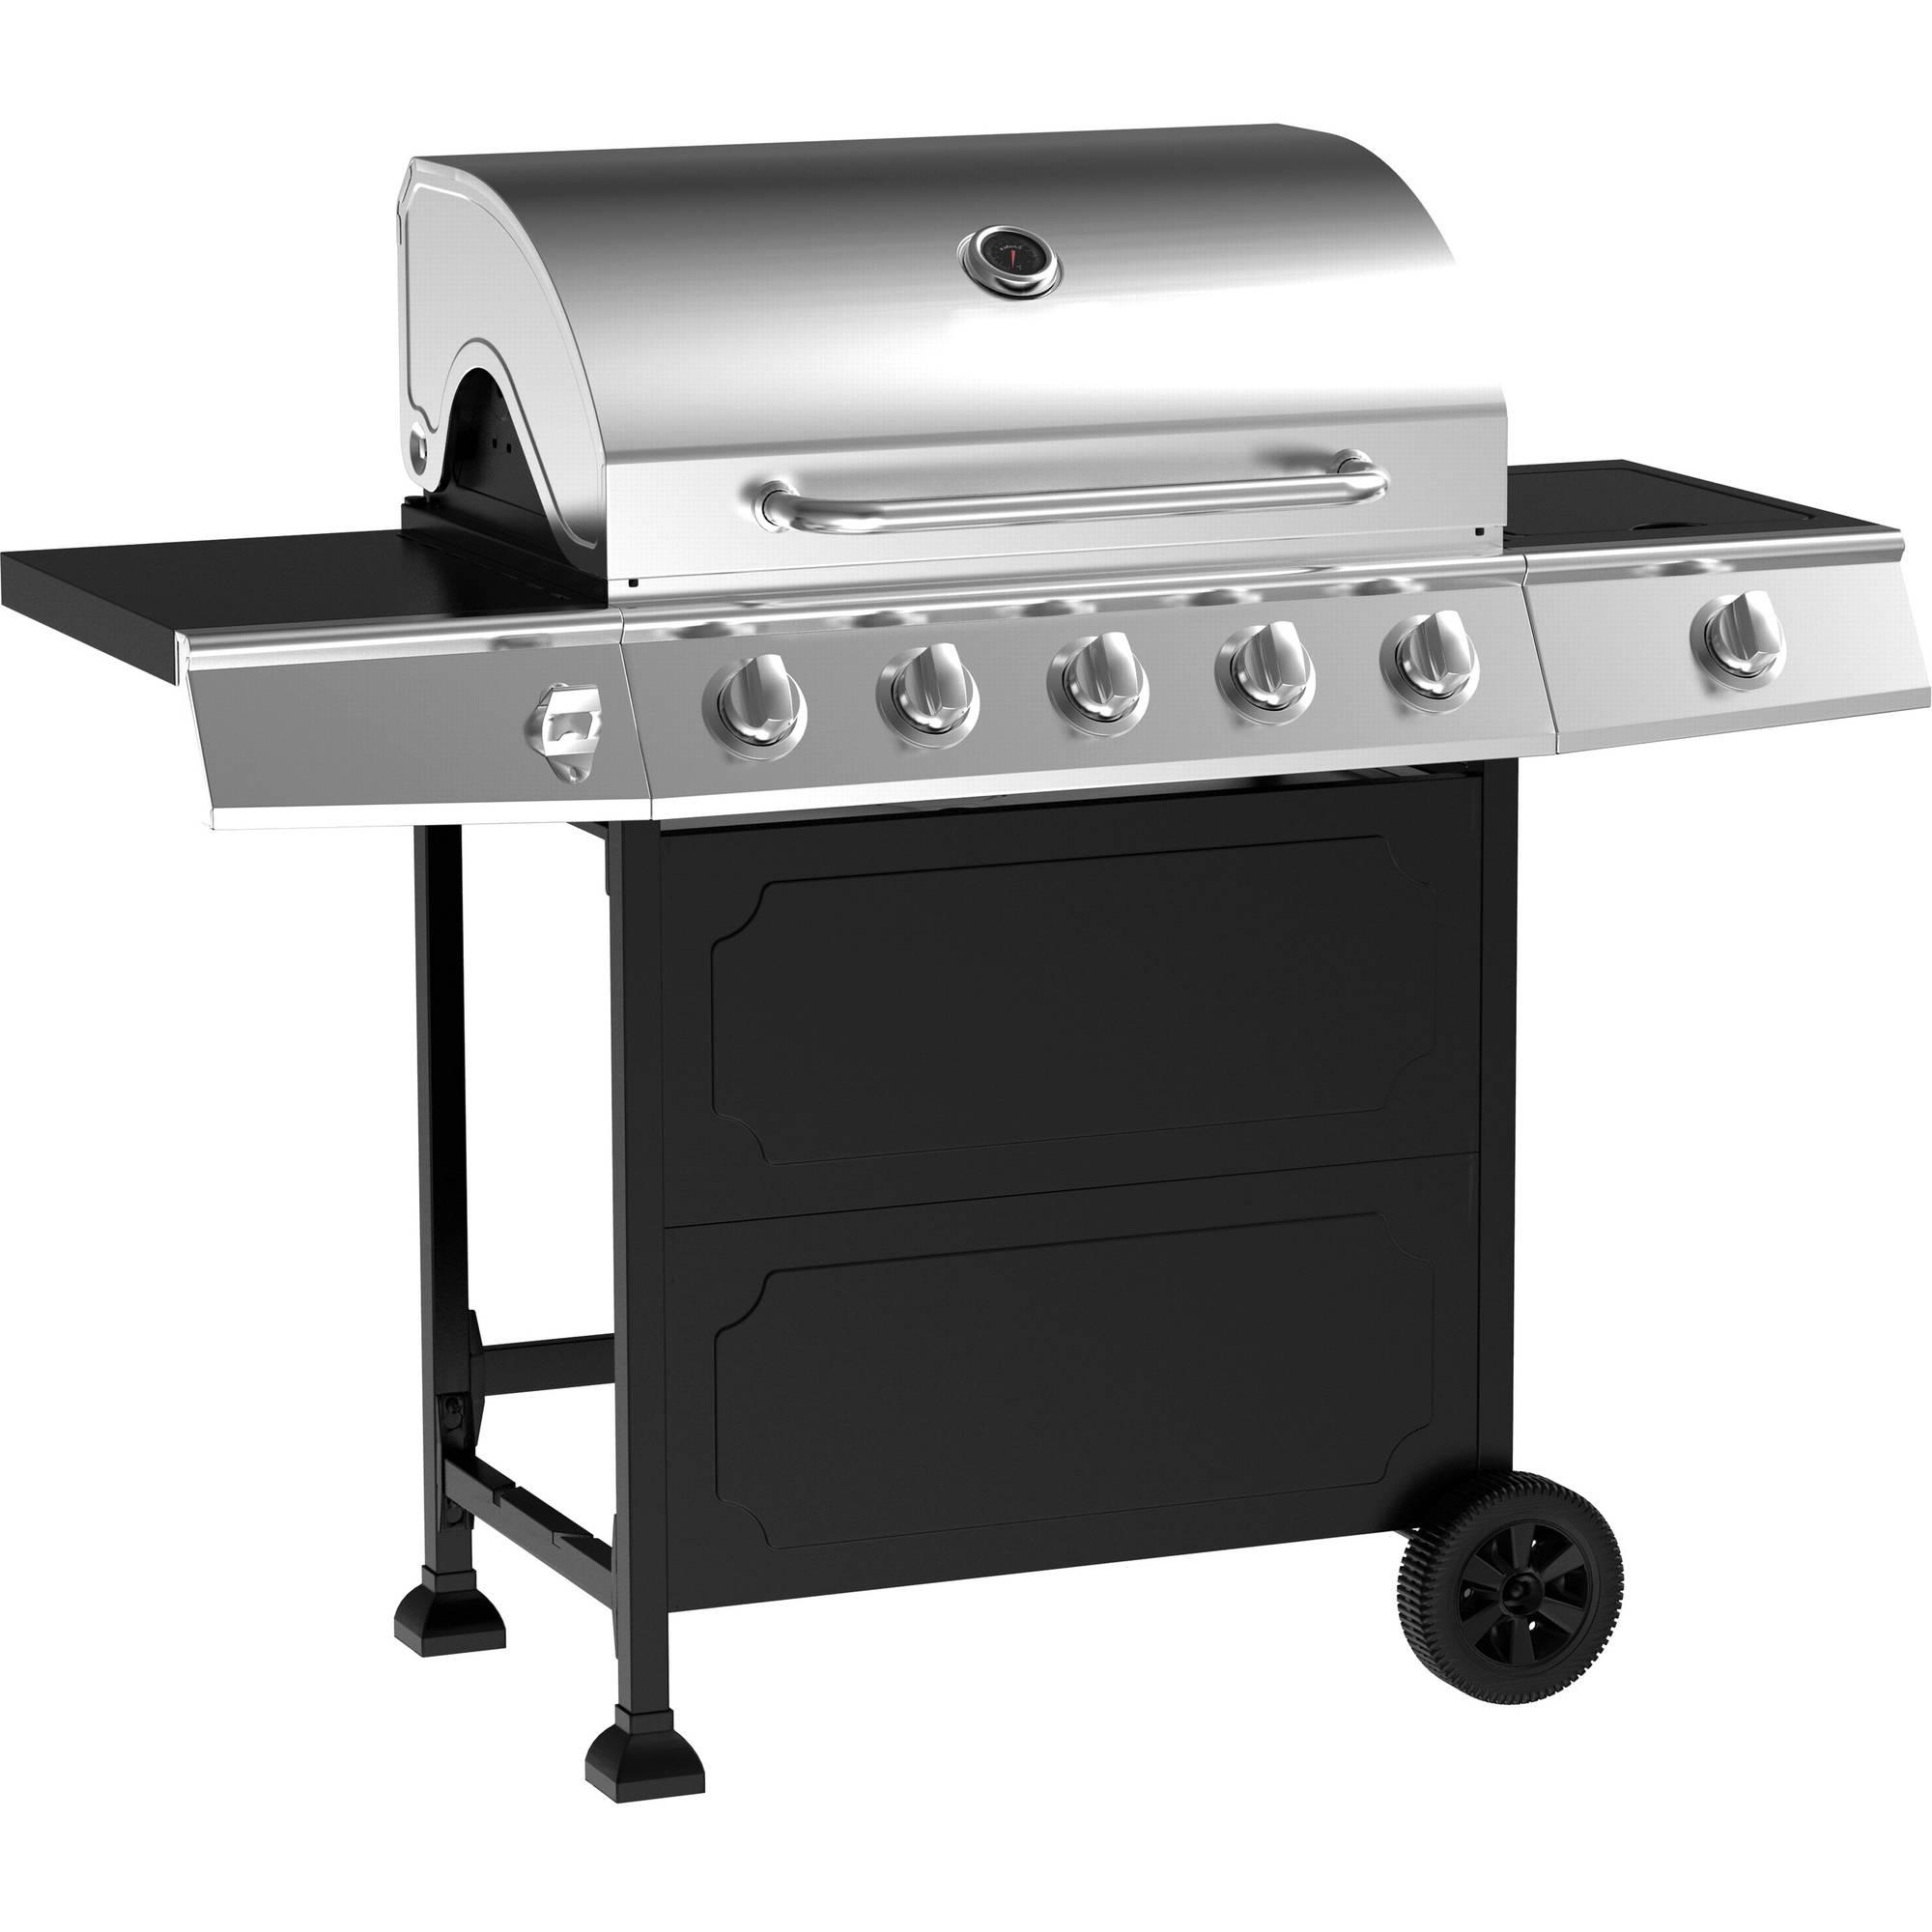 5 burner gas grill stainless steel black outodoor cooking bbq ebay. Black Bedroom Furniture Sets. Home Design Ideas